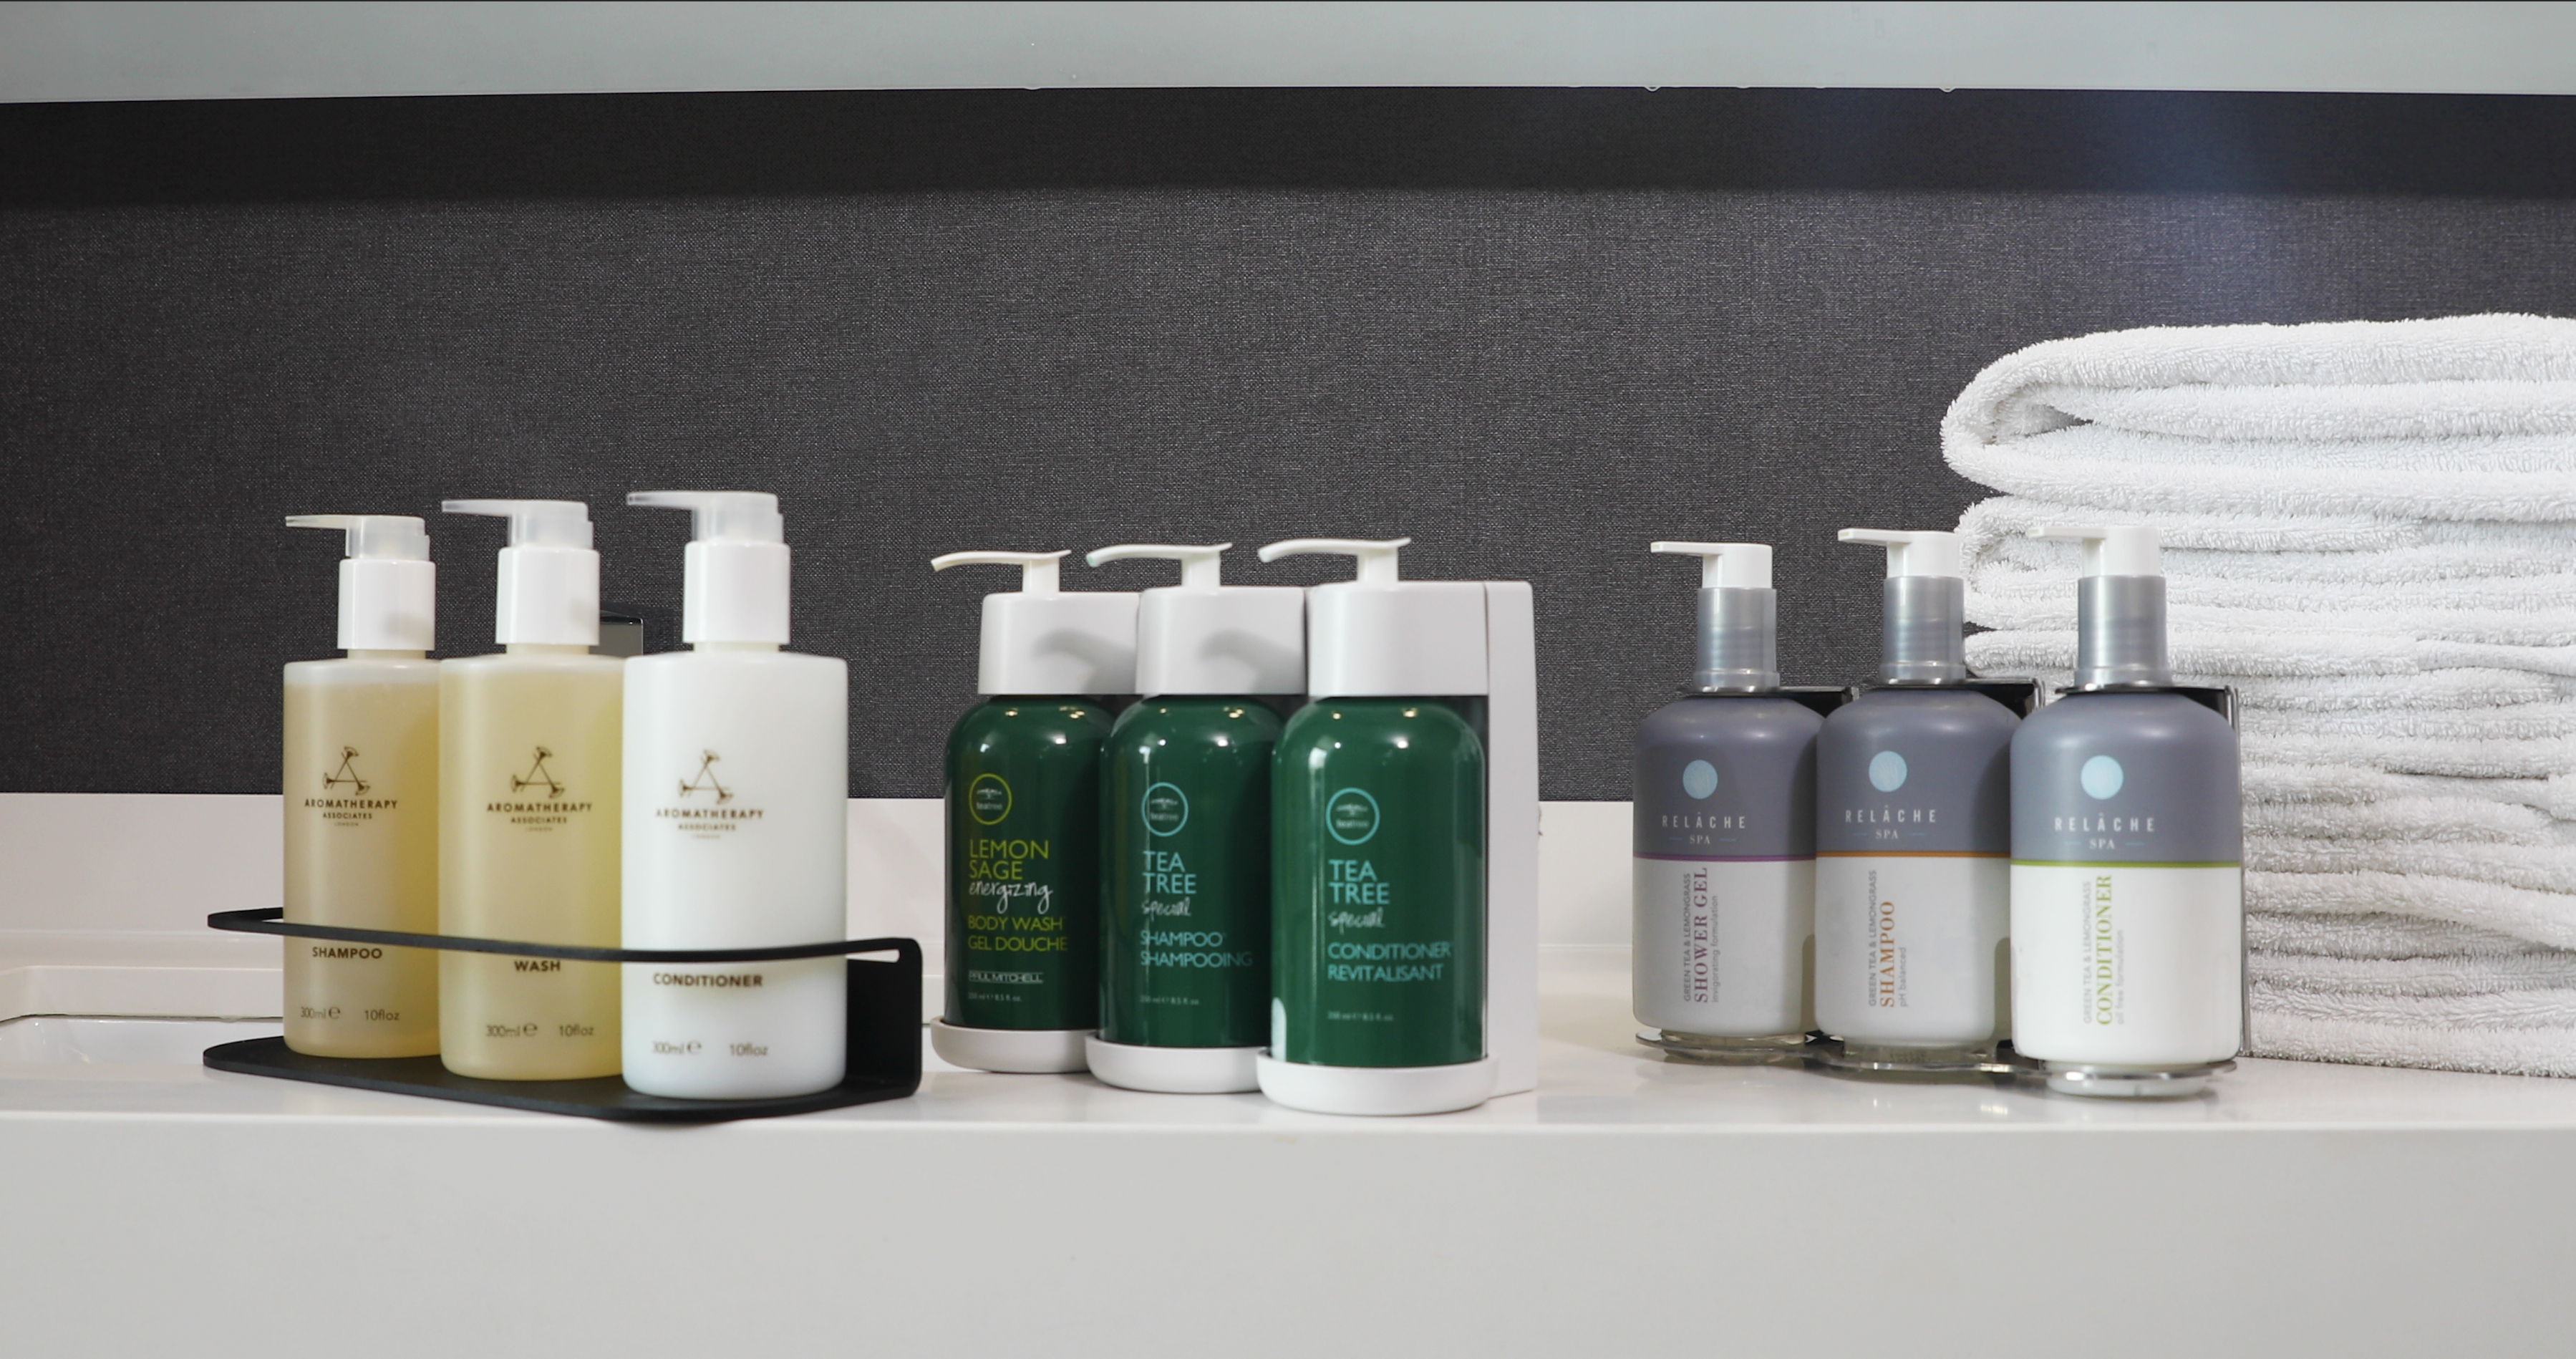 To reduce single-use plastic, Marriott International hotels across the globe are continuing to move to larger bottles of shampoo, conditioner and body wash in guestroom showers.